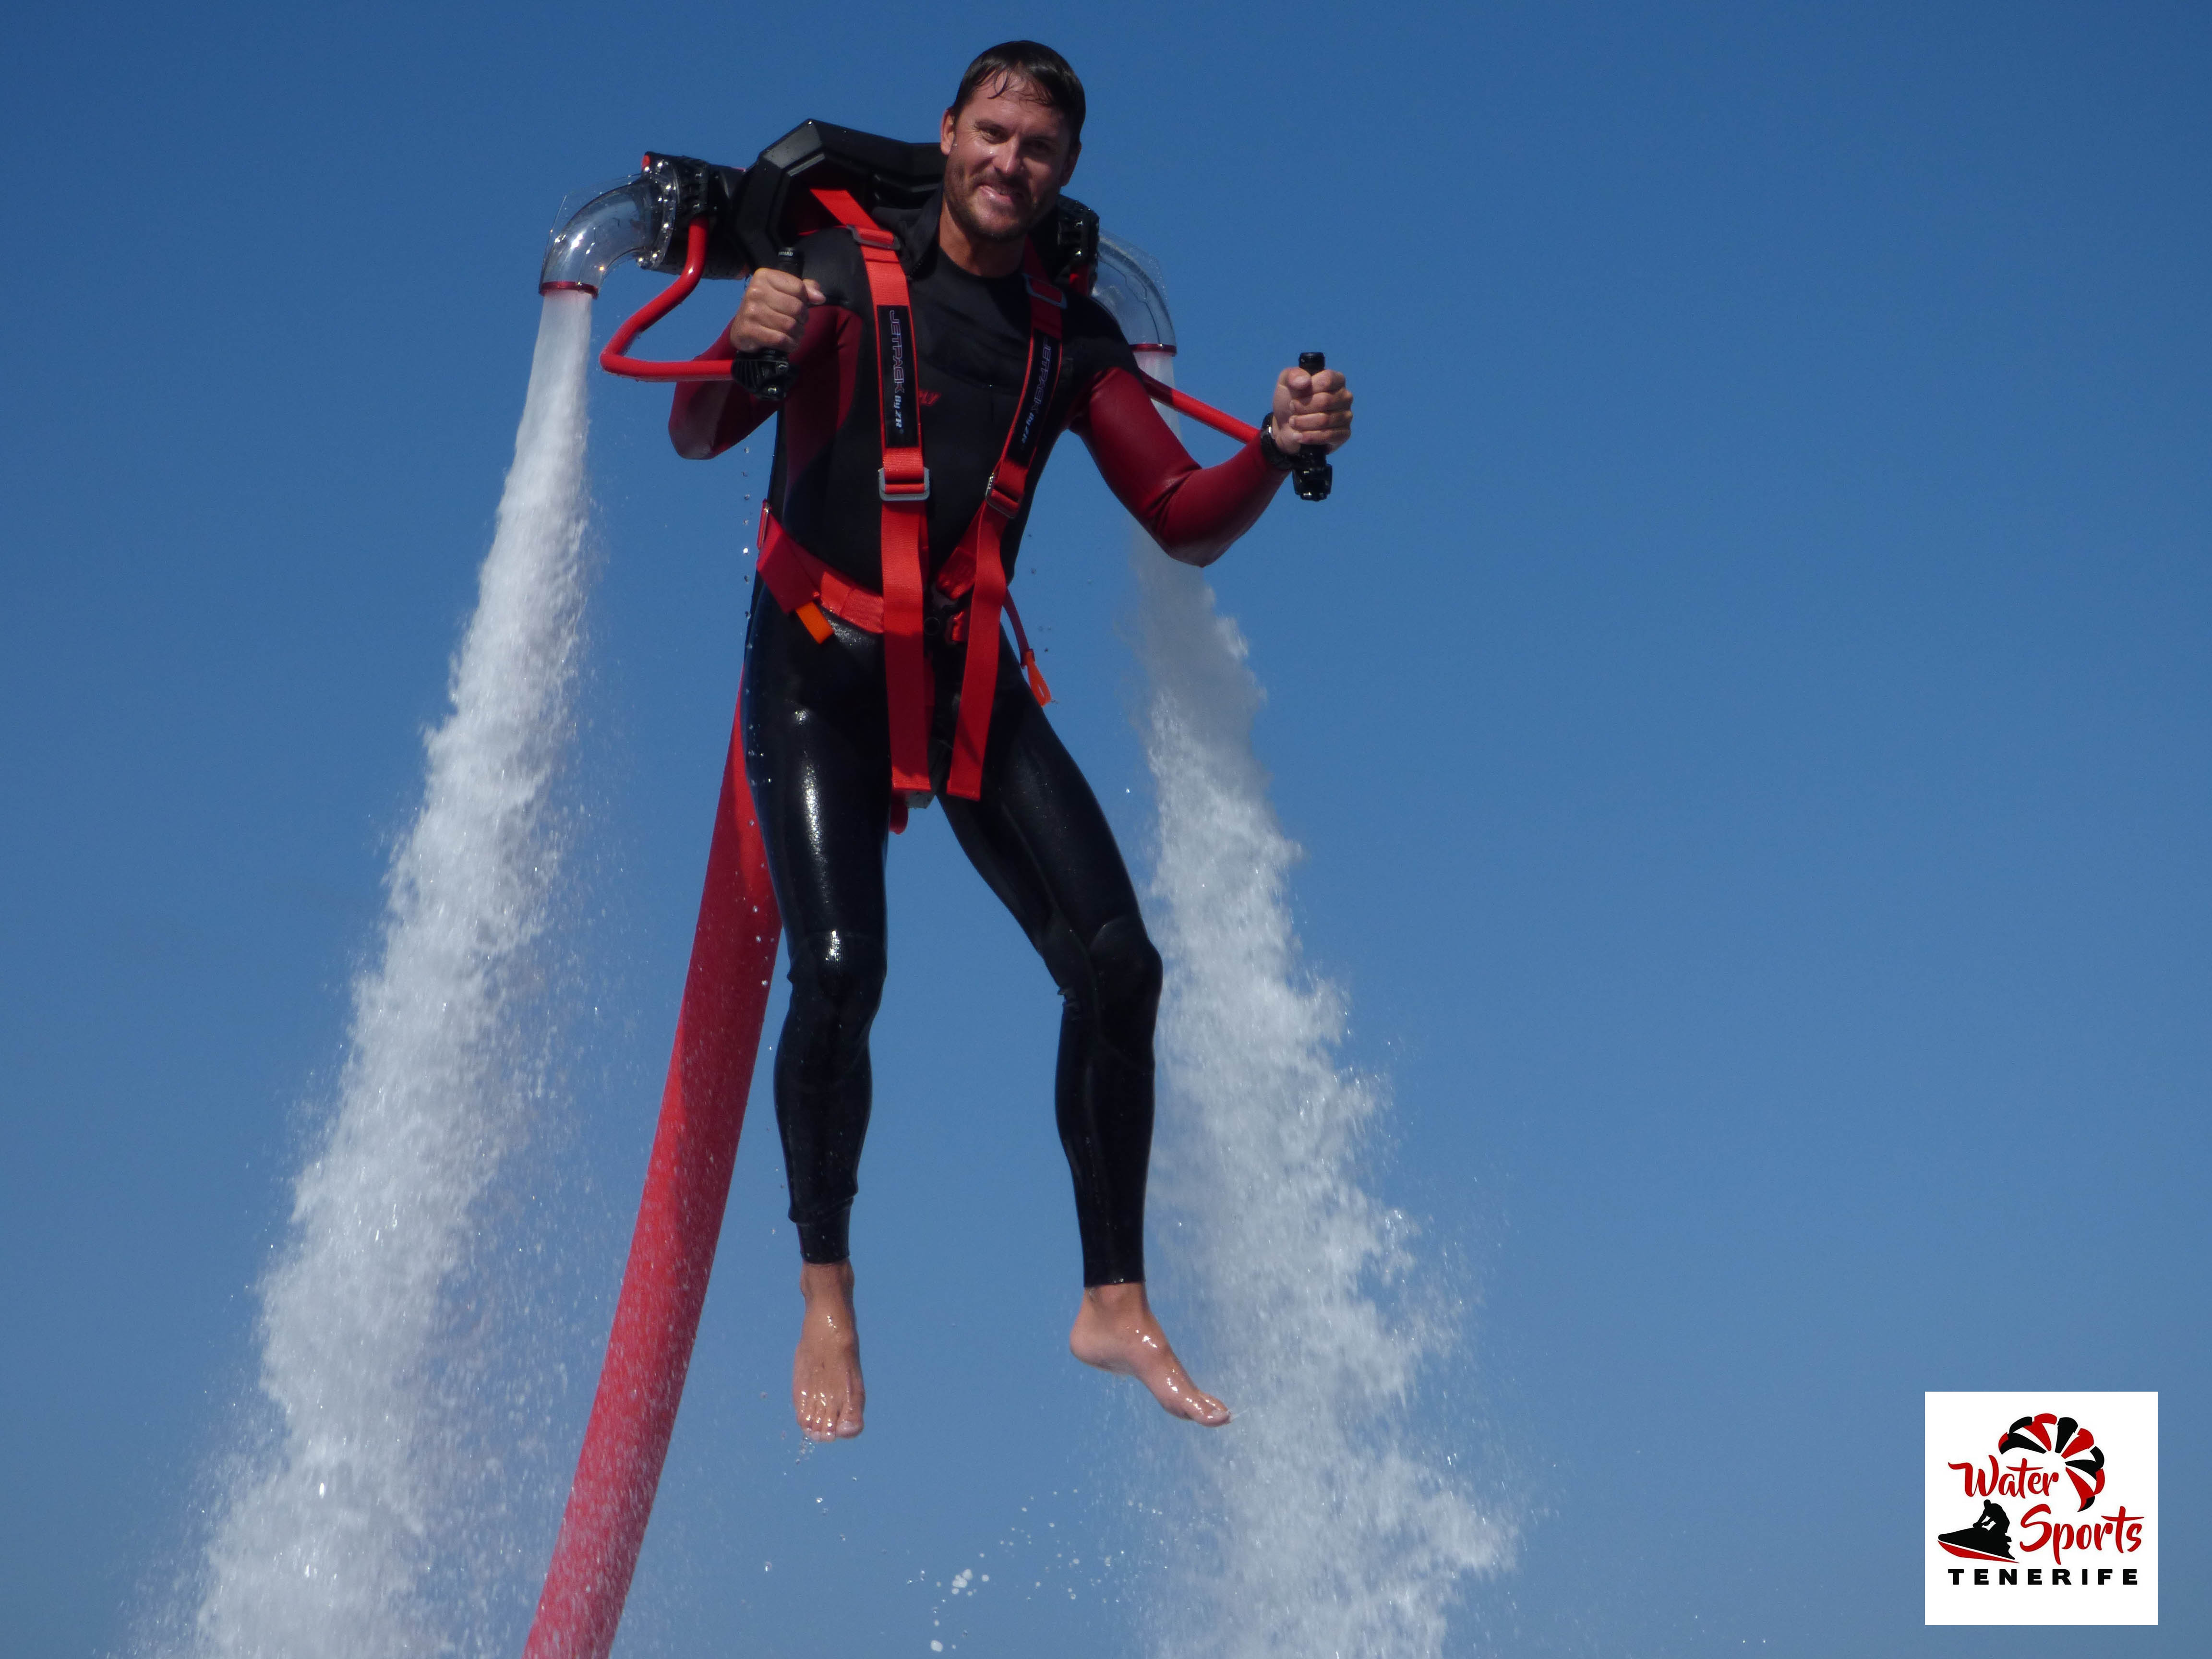 flyboard water sports in fañabe in el medano tenerife water sports